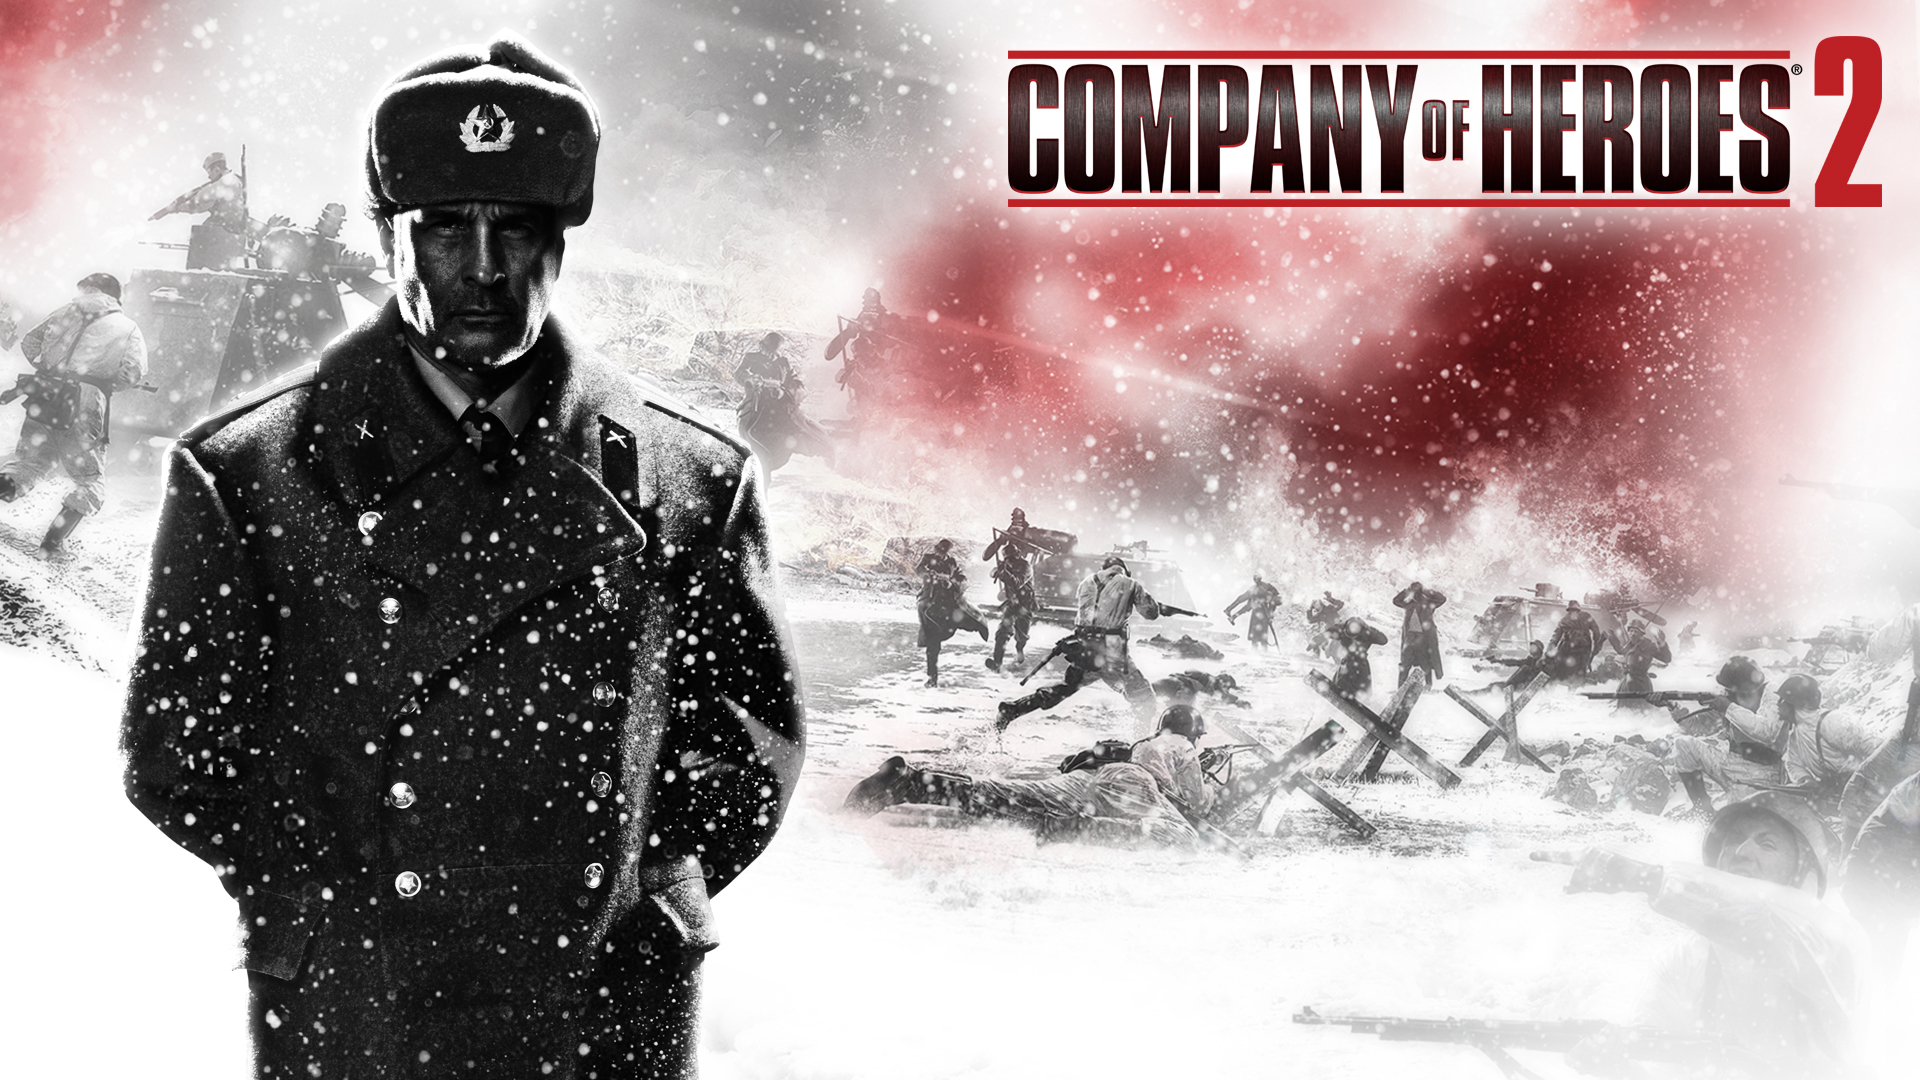 Company Of Heroes 2 Wallpapers Hd Company Of Heroes 2 Logo